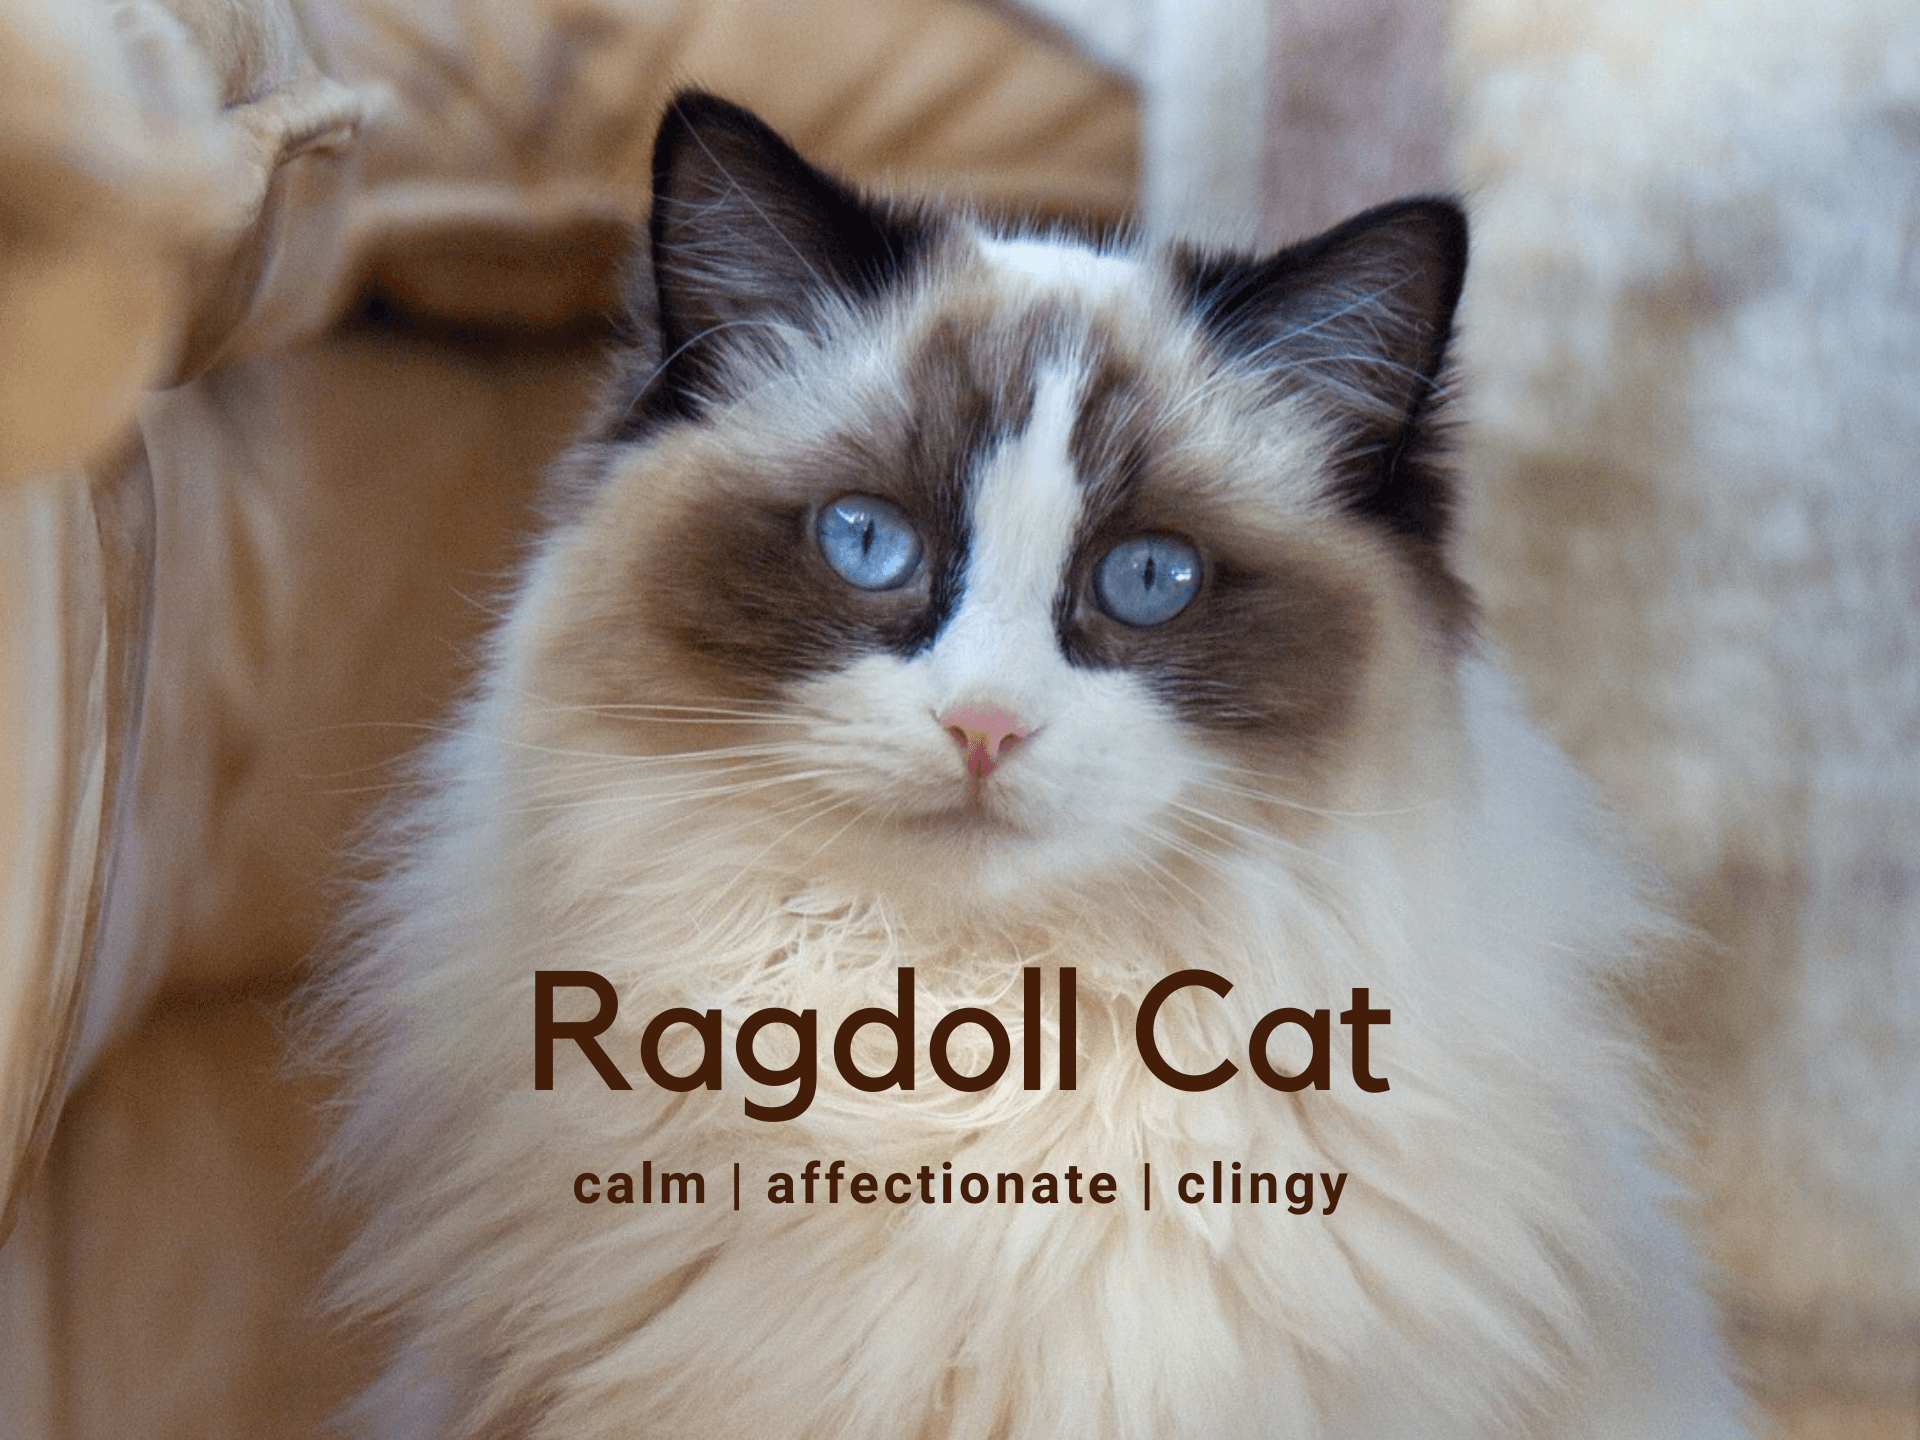 Ragdoll Cat - Breed Information